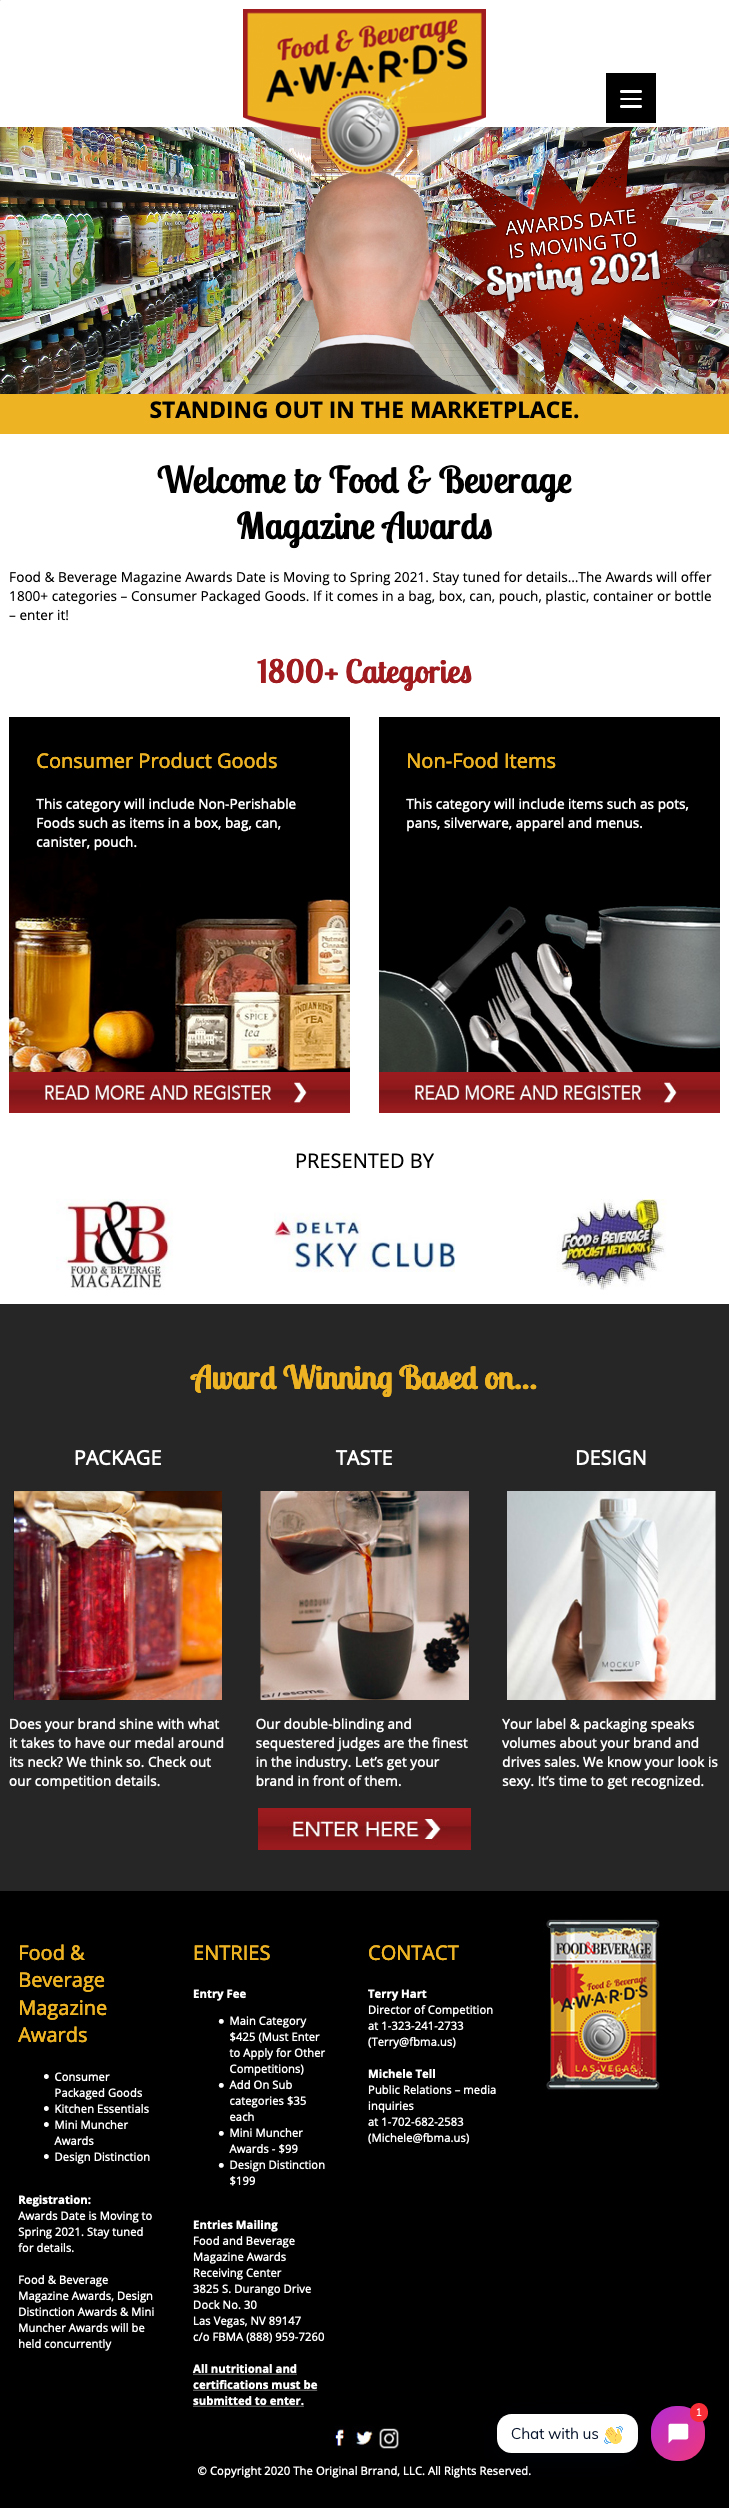 Food and Beverage Awards